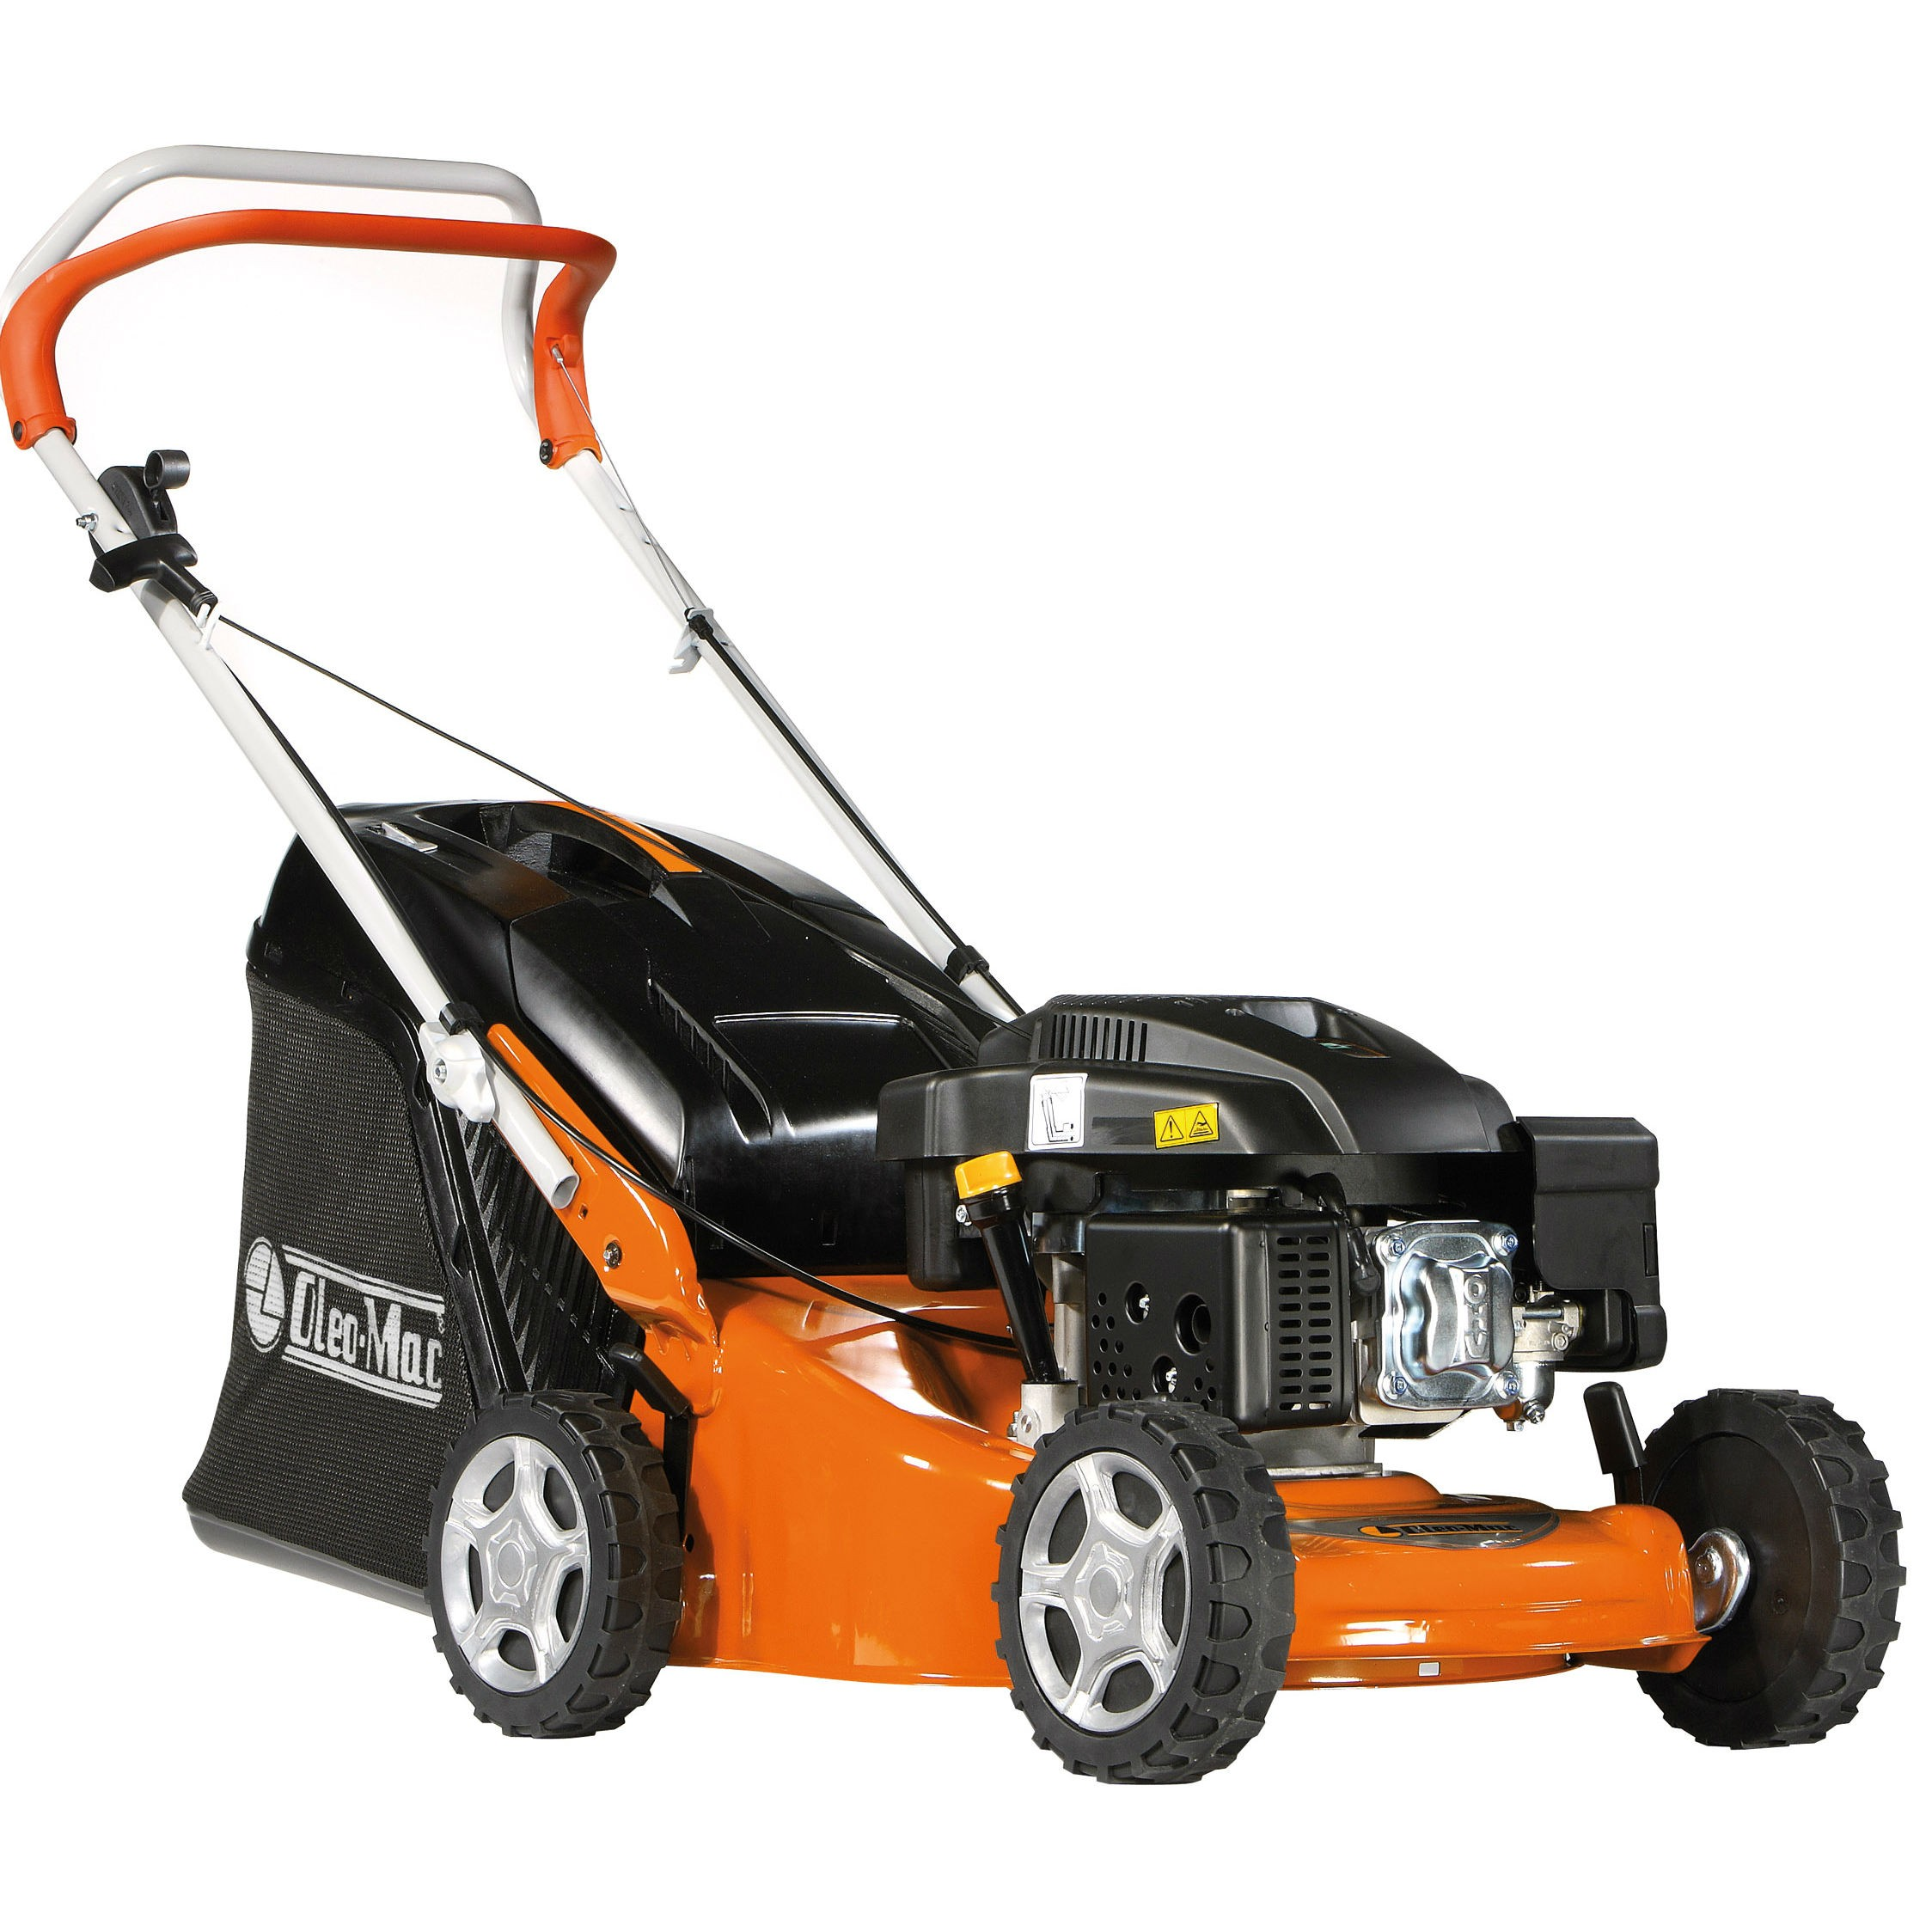 Oleo-Mac G44-PK Comfort-Plus Hand-Propelled Petrol Lawnmower